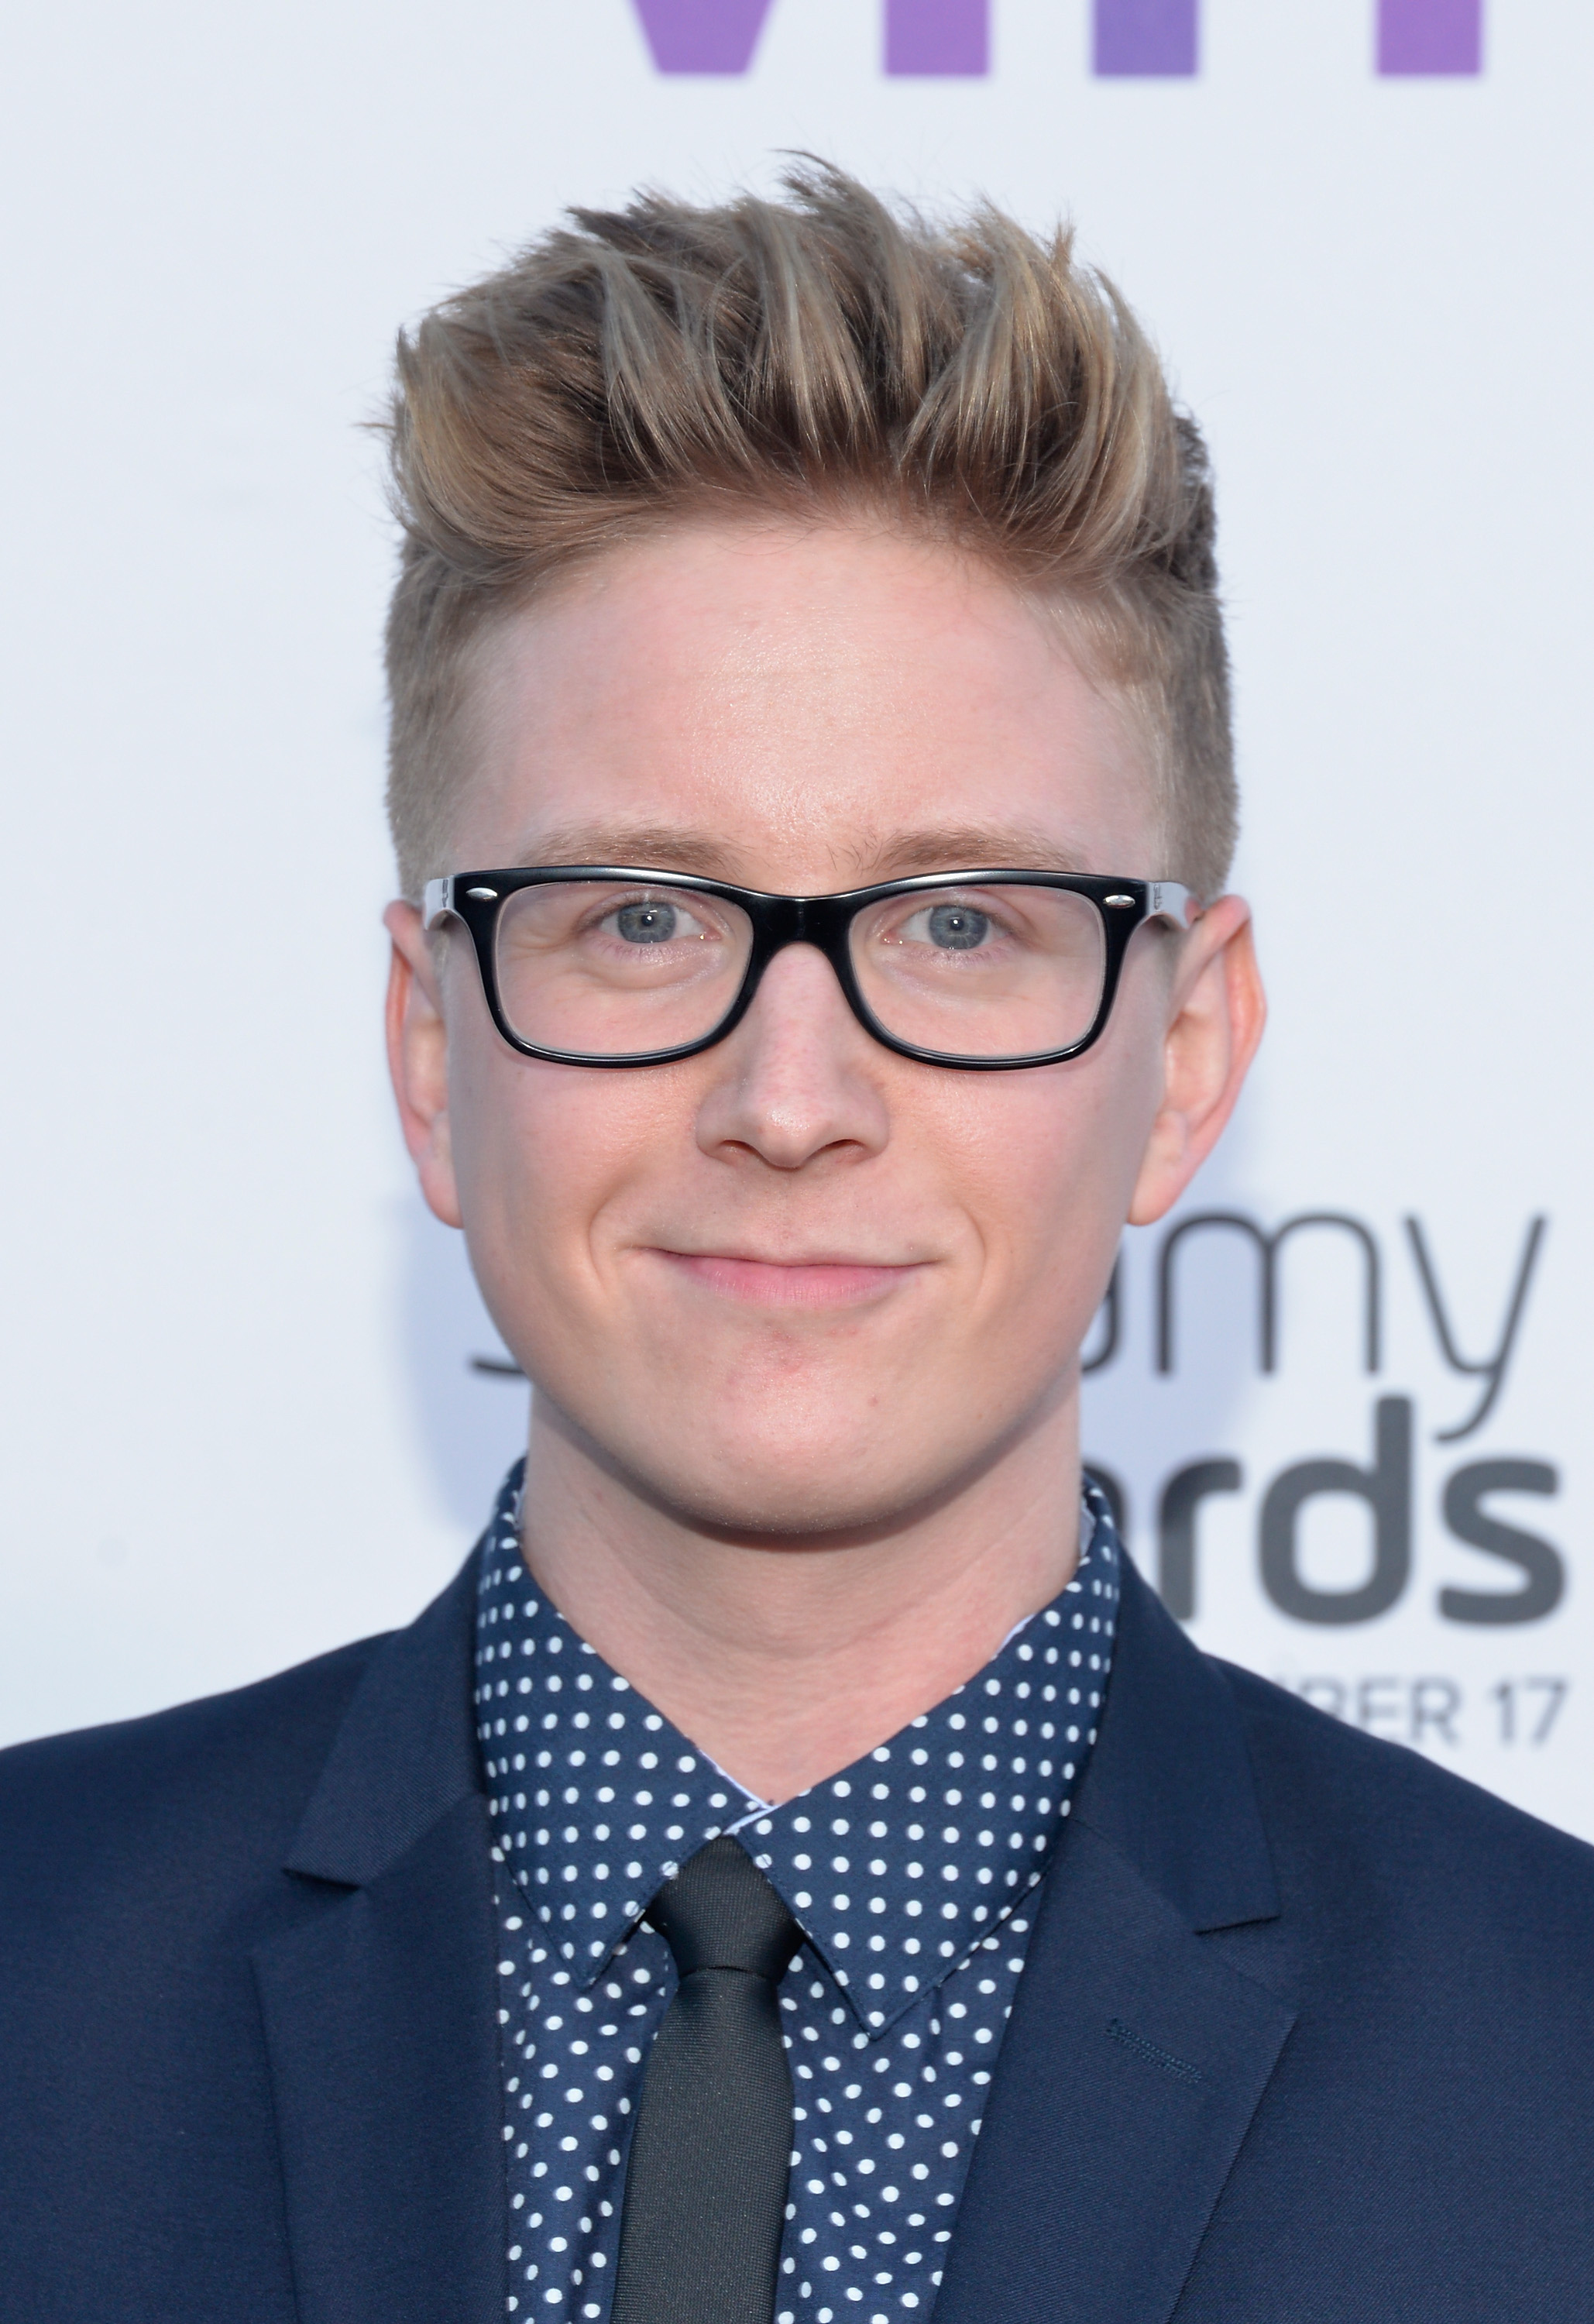 Internet personality Tyler Oakley attends the 5th Annual Streamy Awards at Hollywood Palladium in Los Angeles, on Sept. 17, 2015.